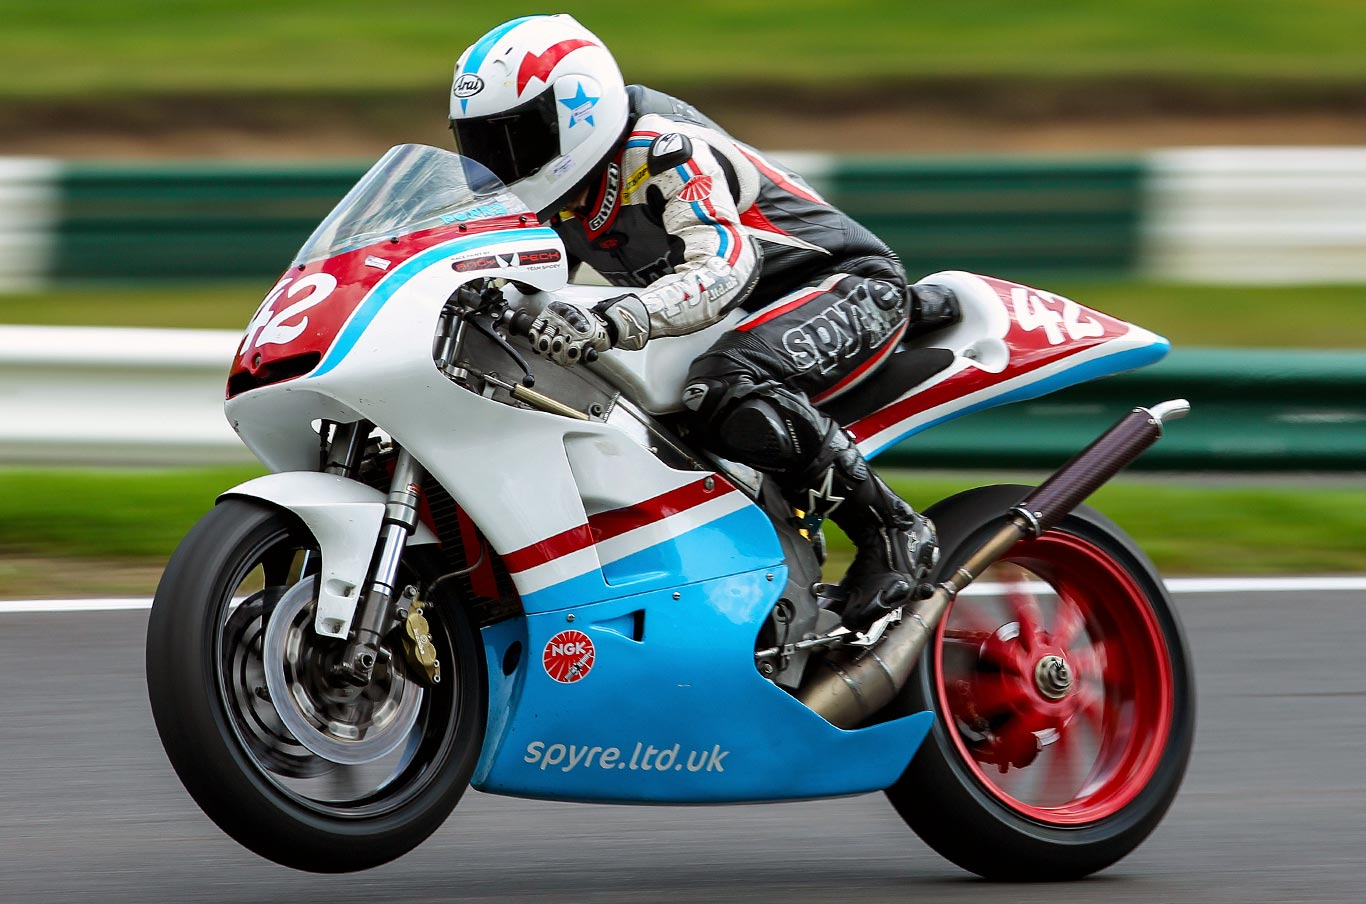 Honda RS250 at Cadwell Park